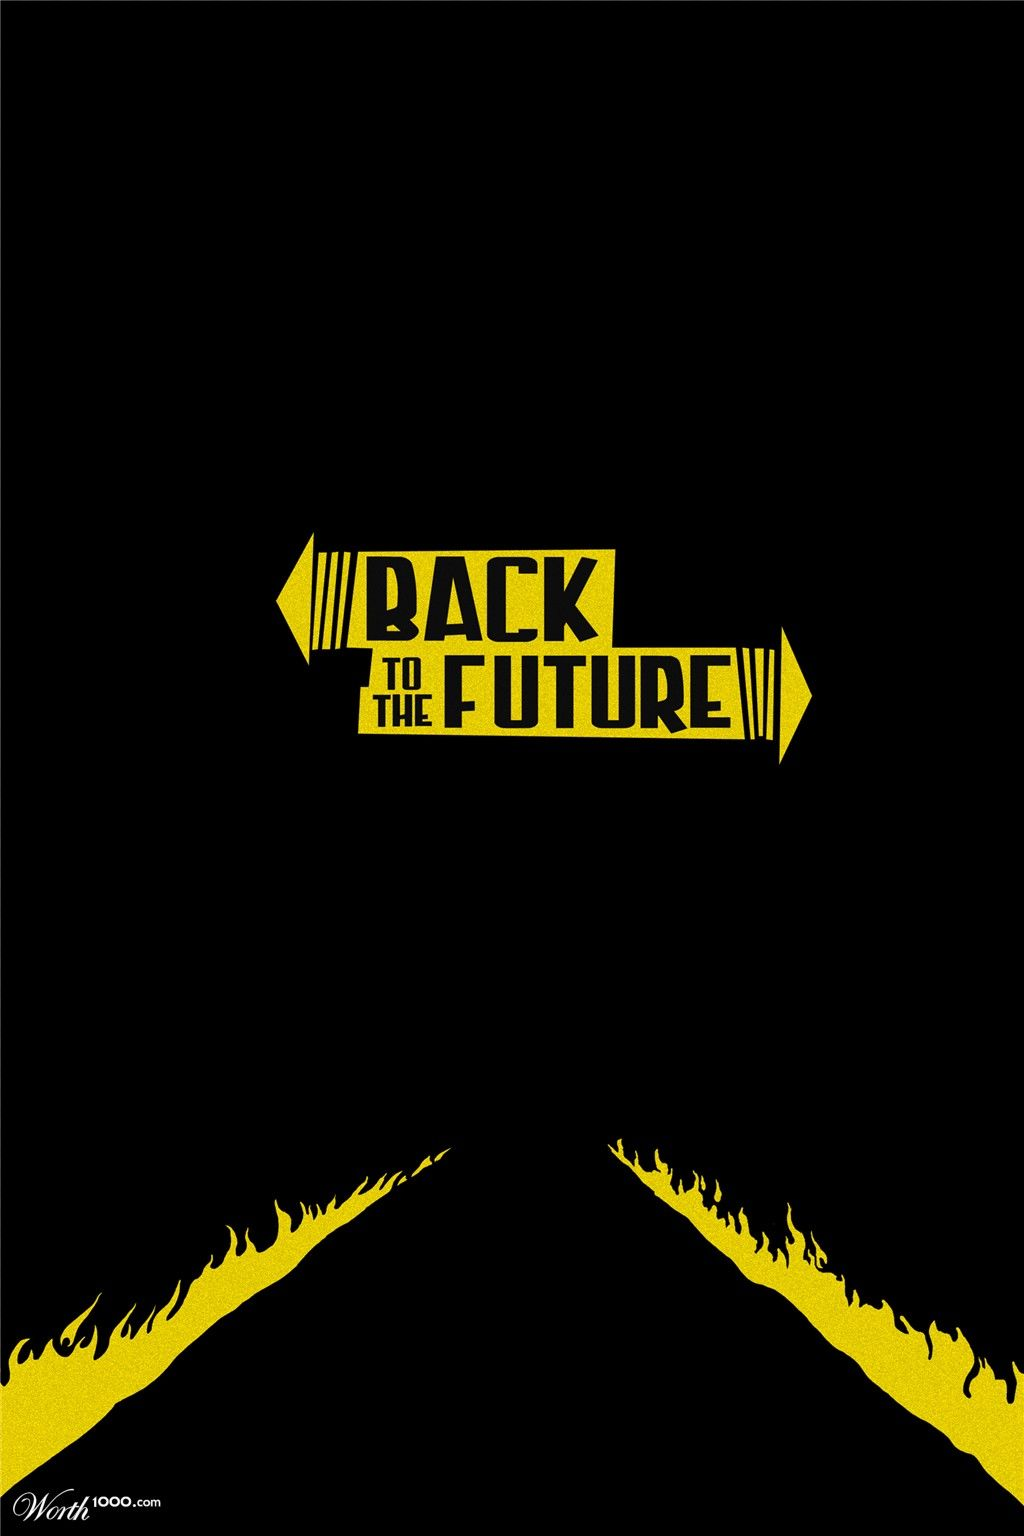 Back to the future worth1000 contests future poster